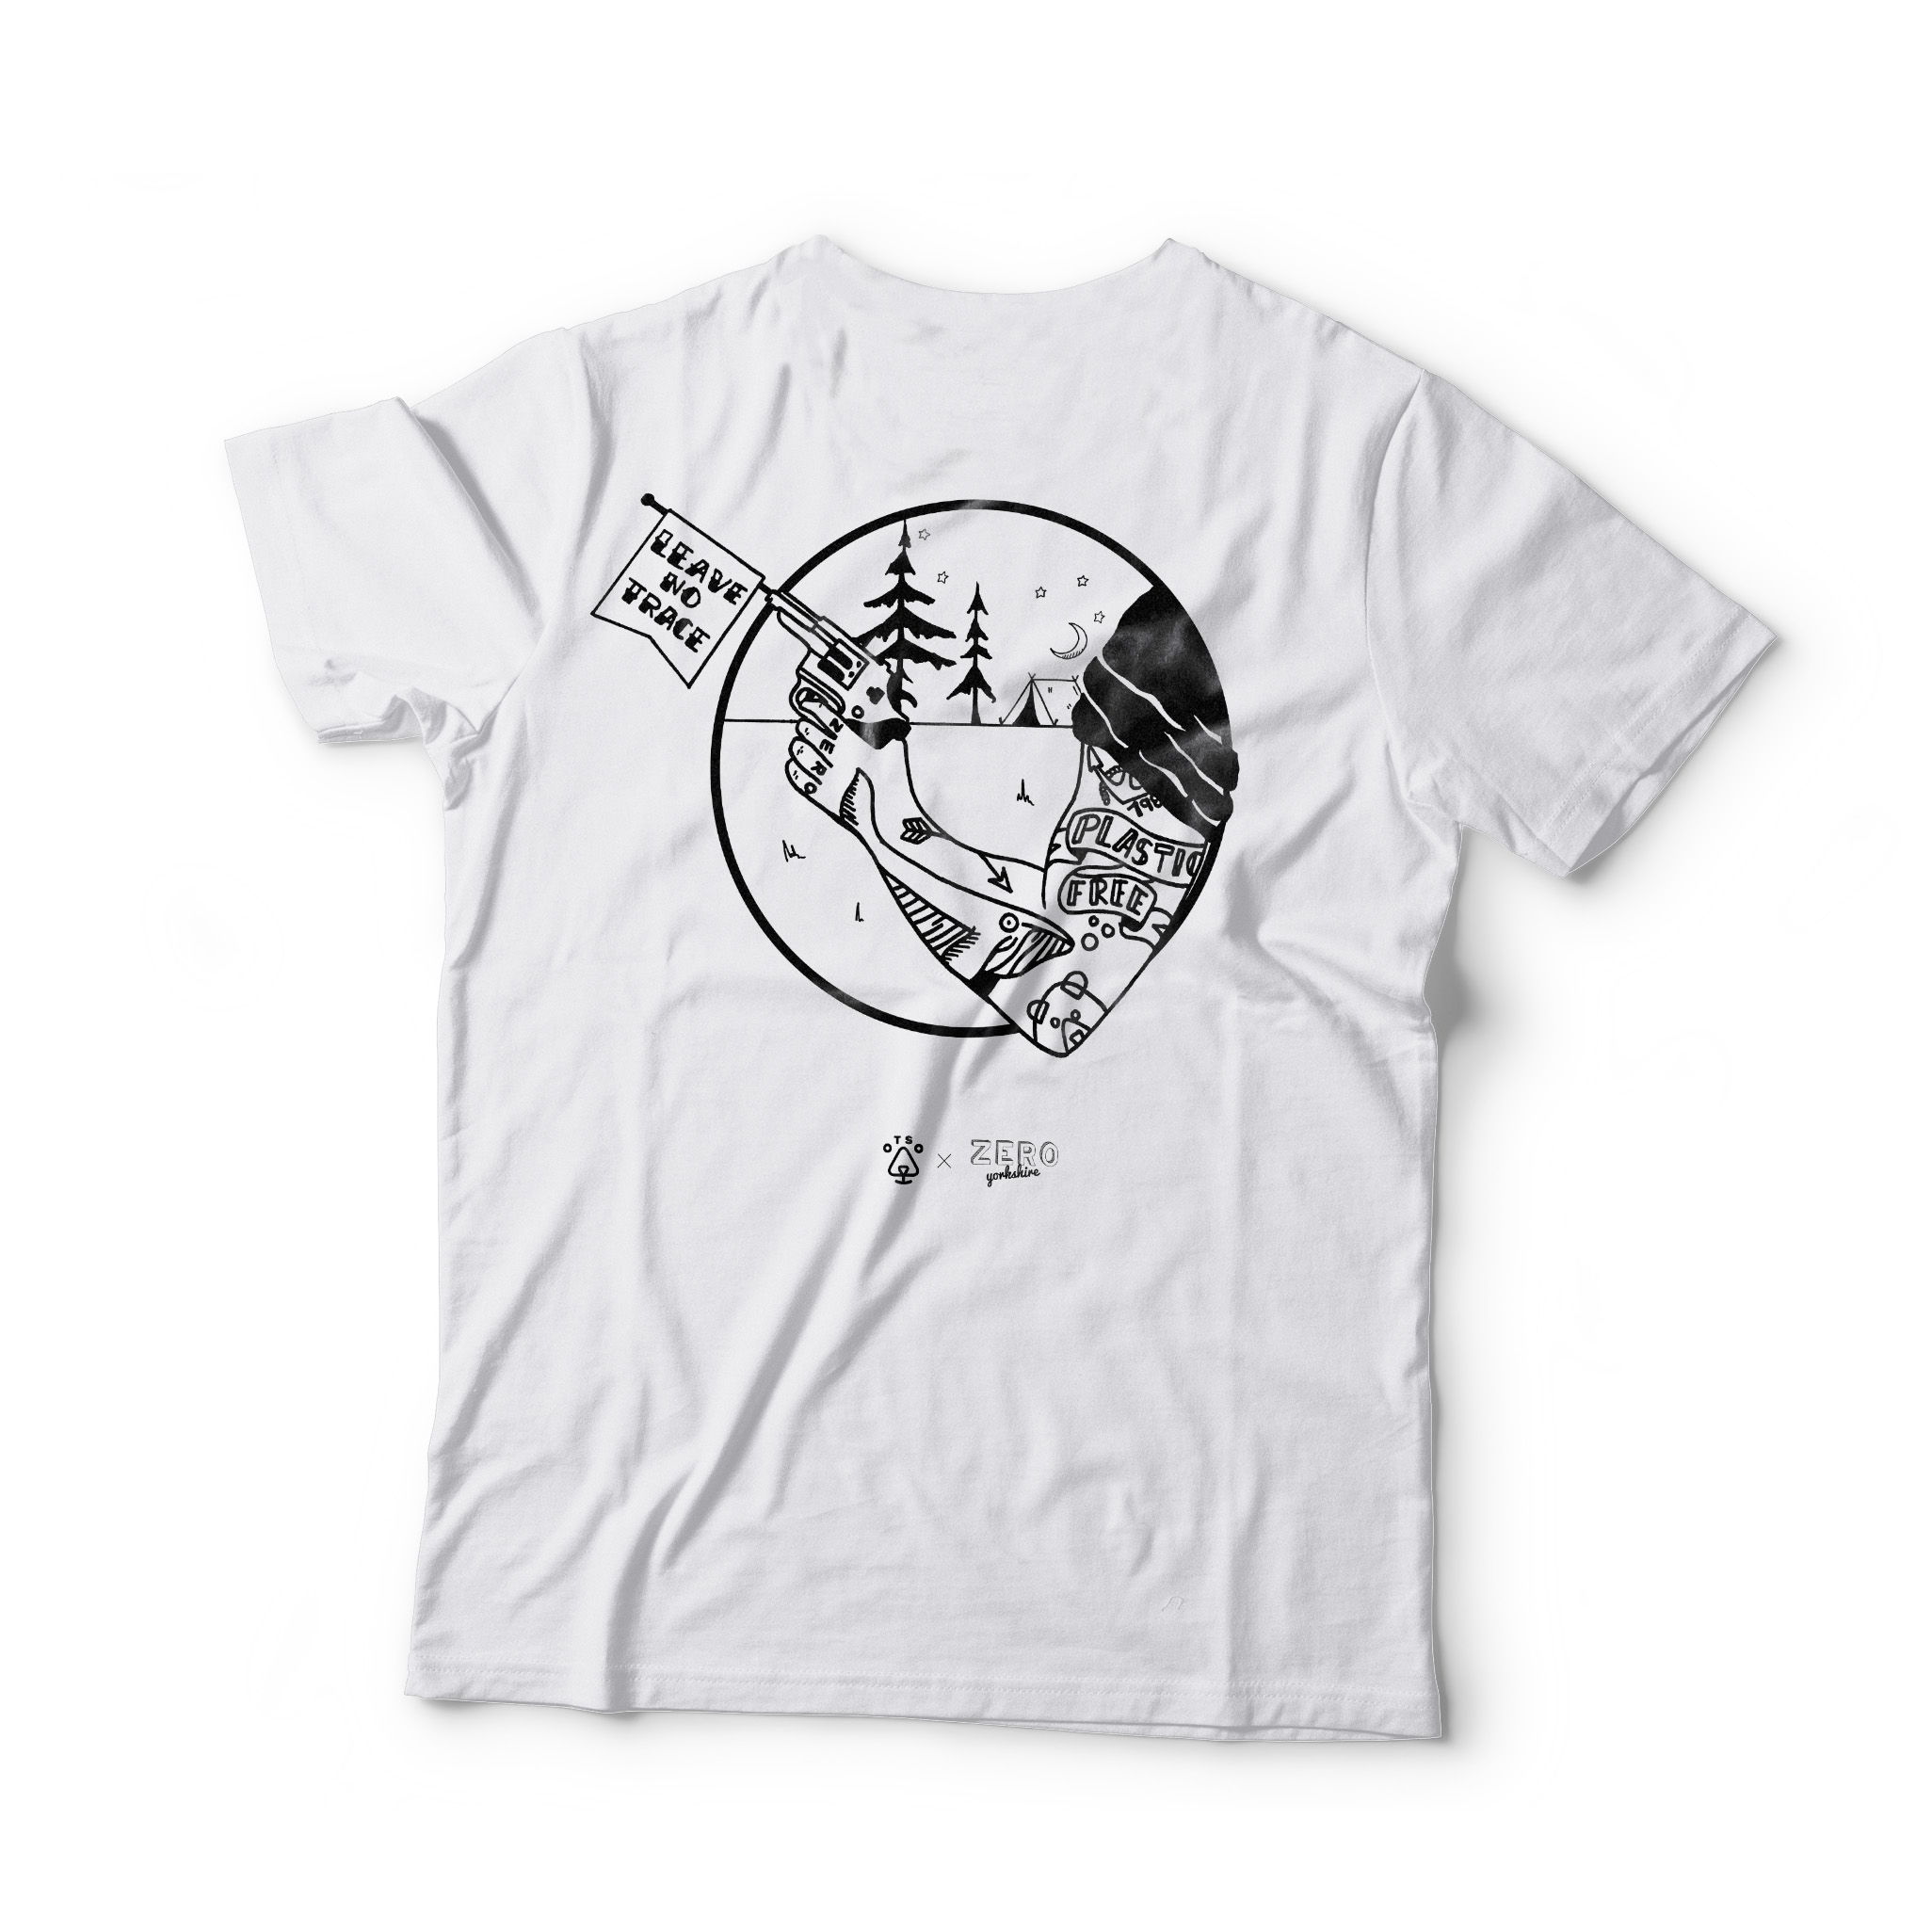 'Leave No Trace' T-Shirt